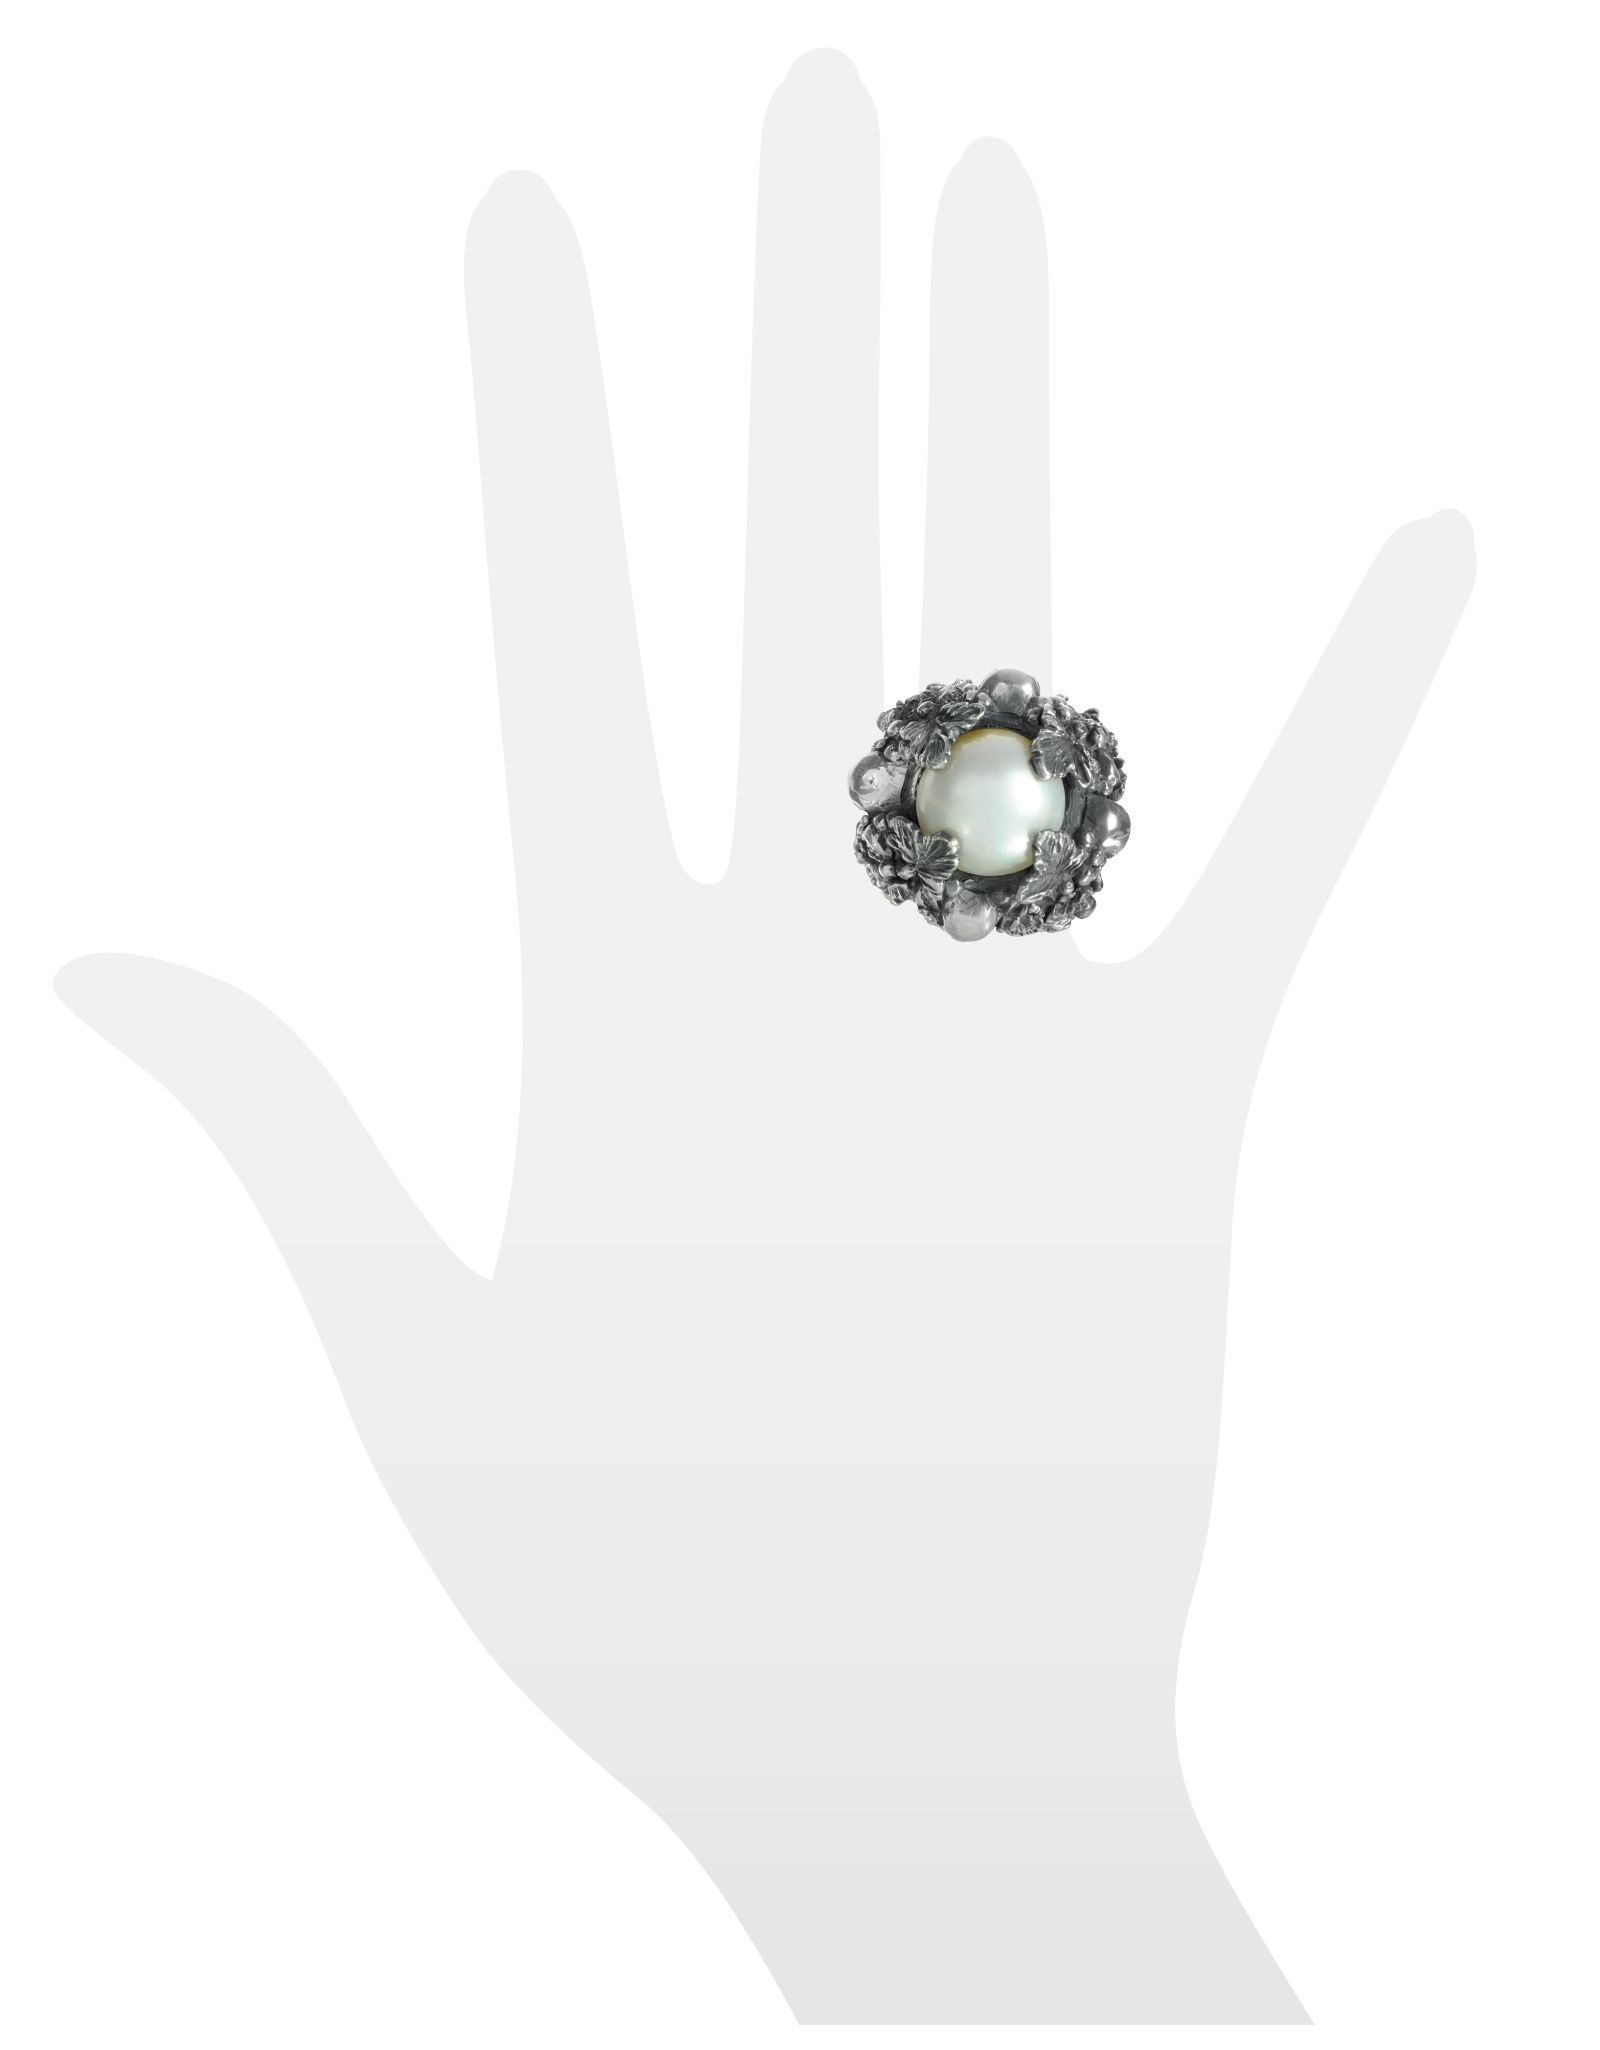 Ugo Cacciatori Sterling Silver and Light Pearl Foliage and Skulls Ring XS (USA 6.5   UK M) at FORZIERI